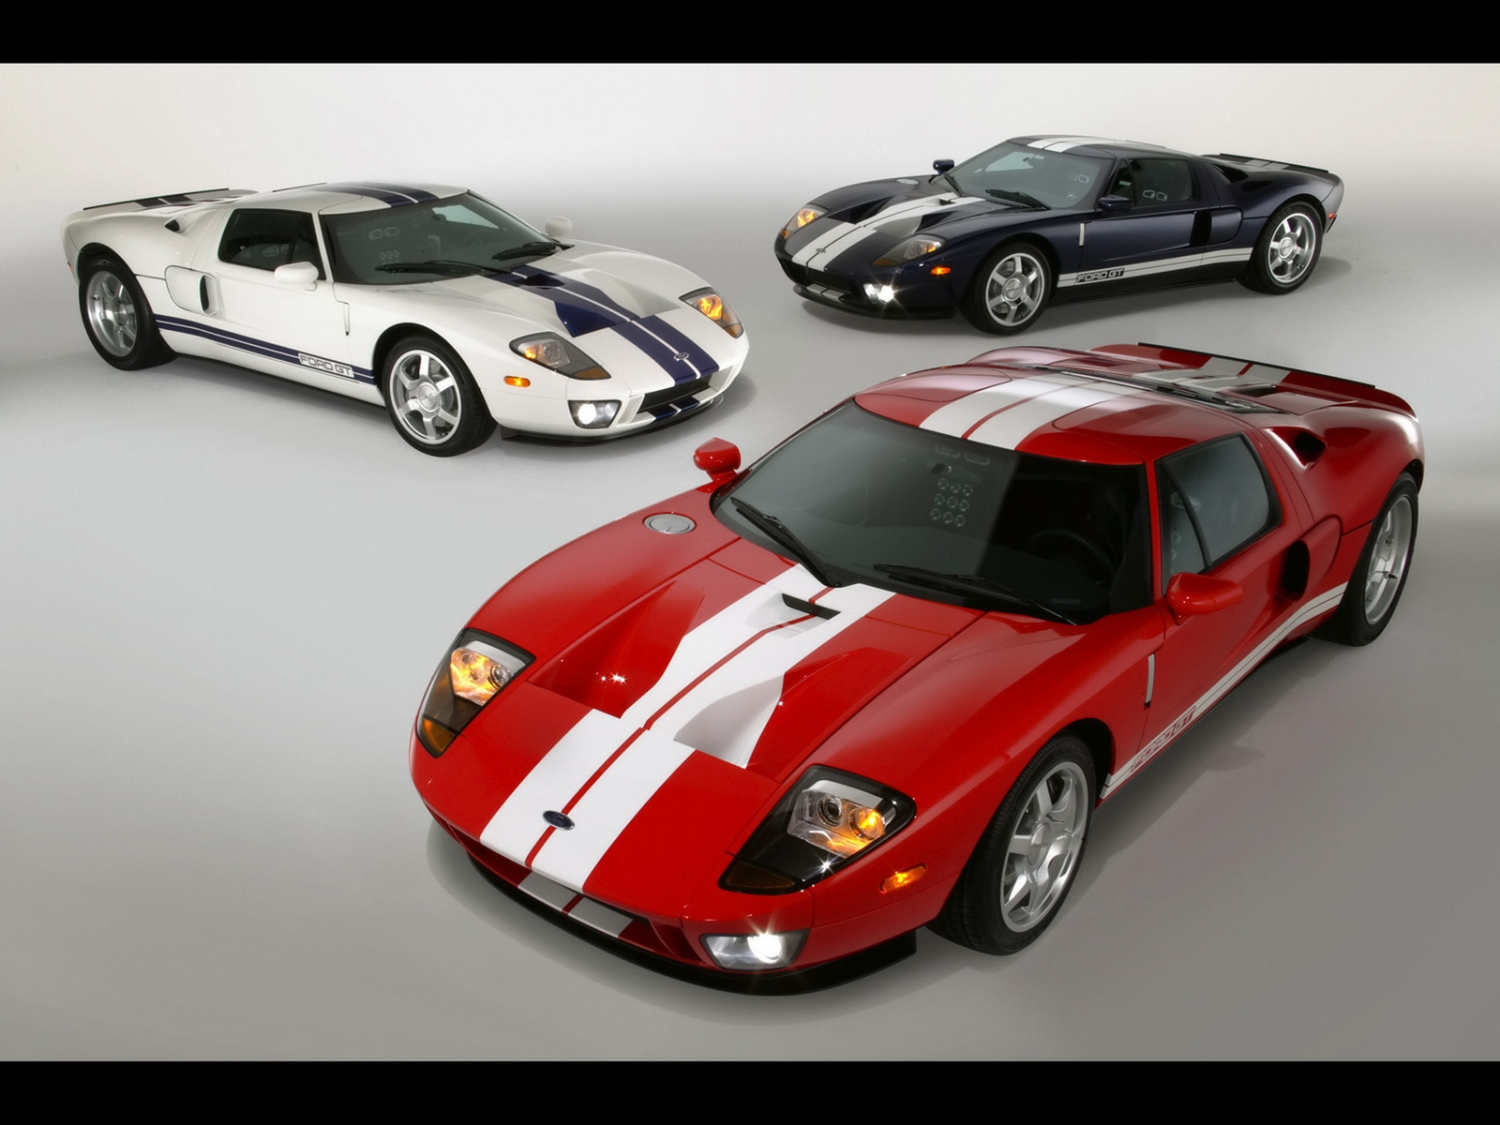 2005 Ford Gt Wallpapers Hd Drivespark